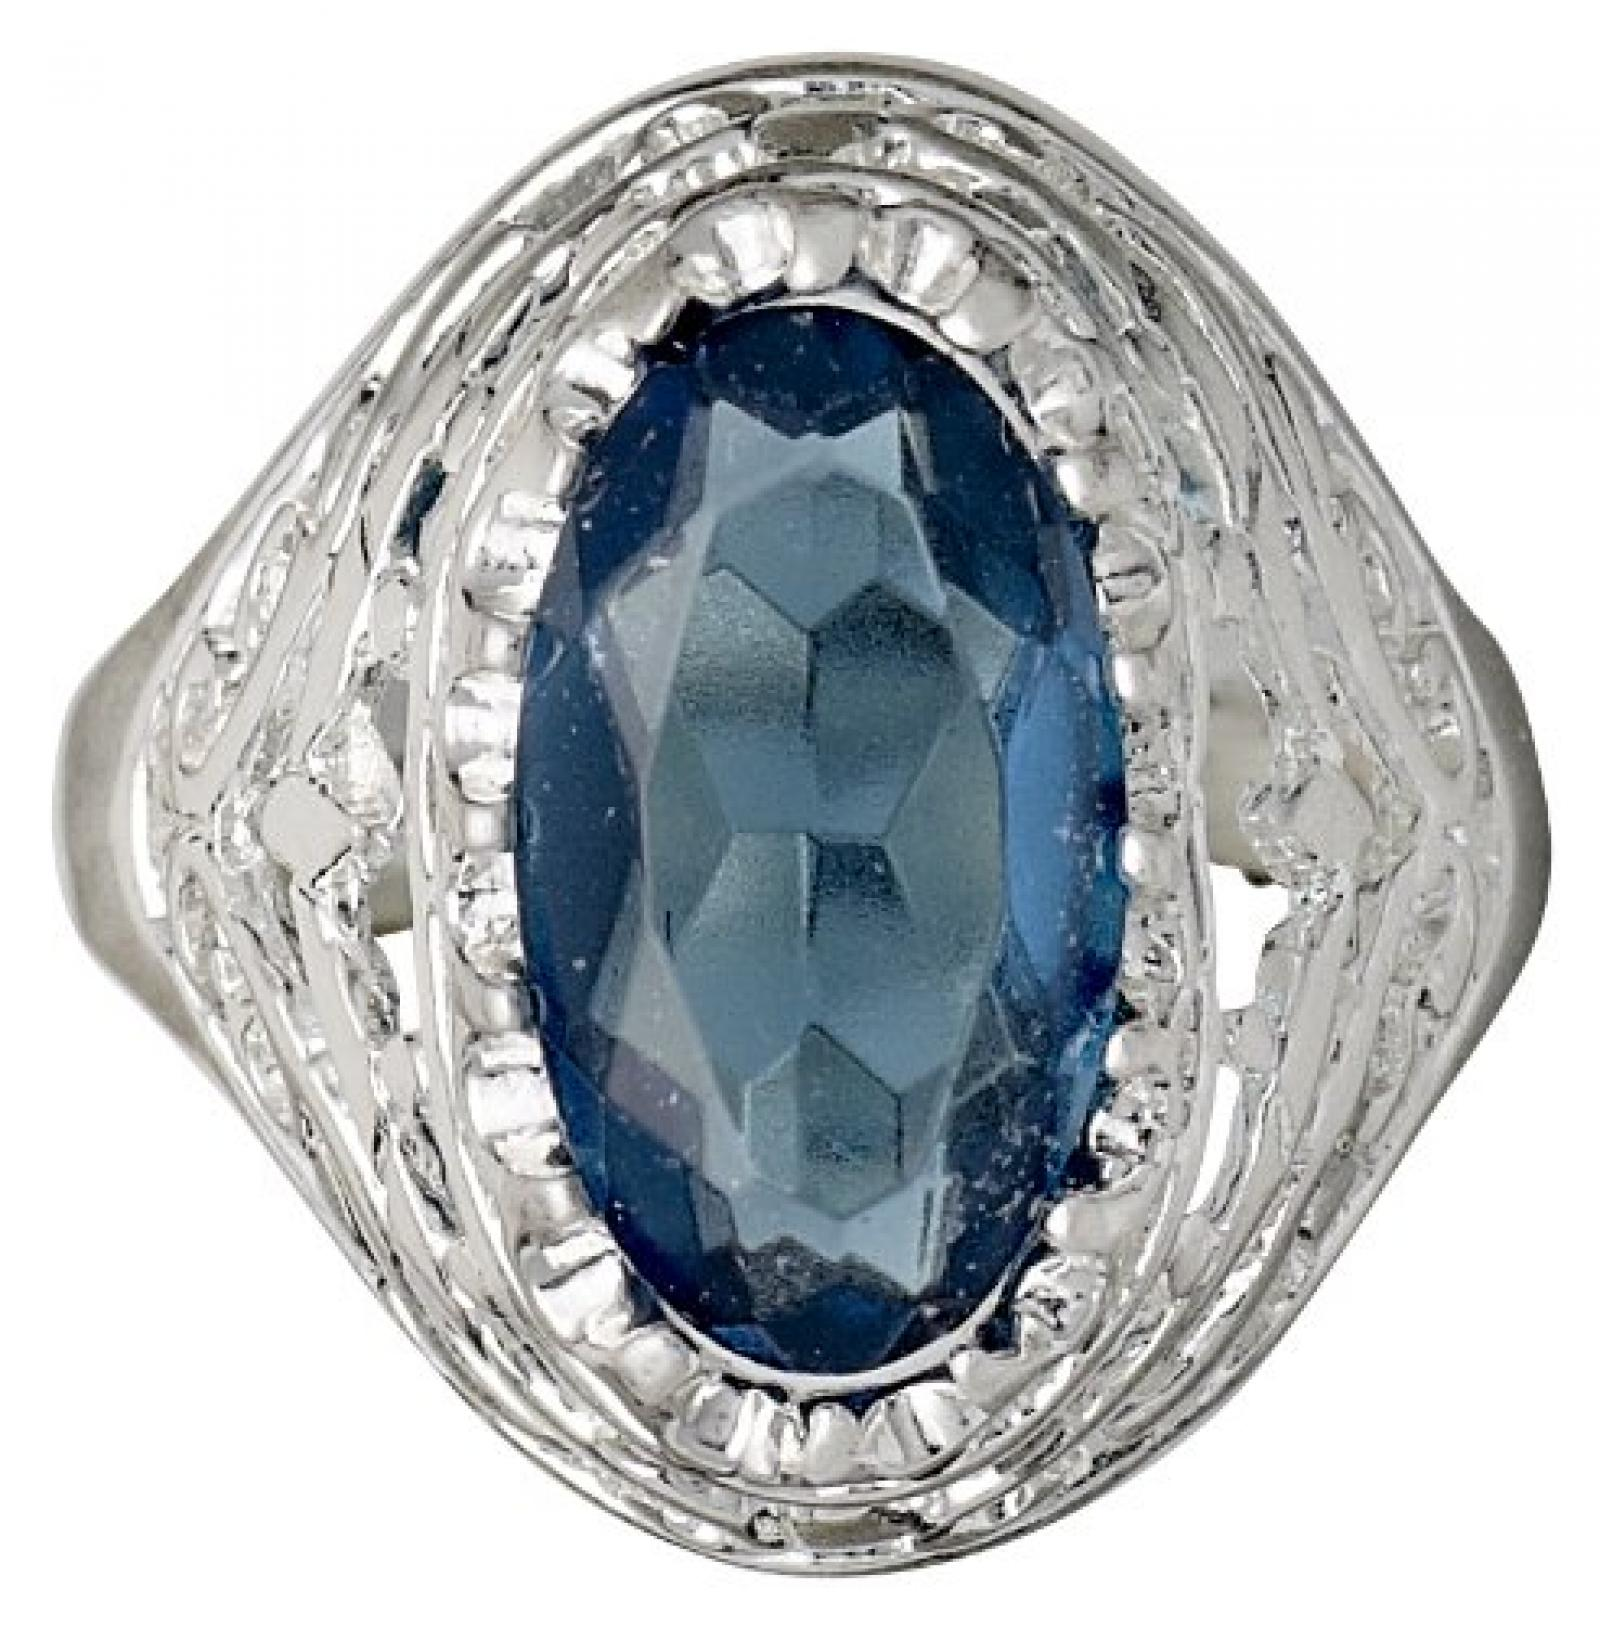 Pilgrim Jewelry Damen-Ring Messing Pilgrim Damen-Ring aus der Serie Russian loving versilbert,blau  2.0 cm 231336204